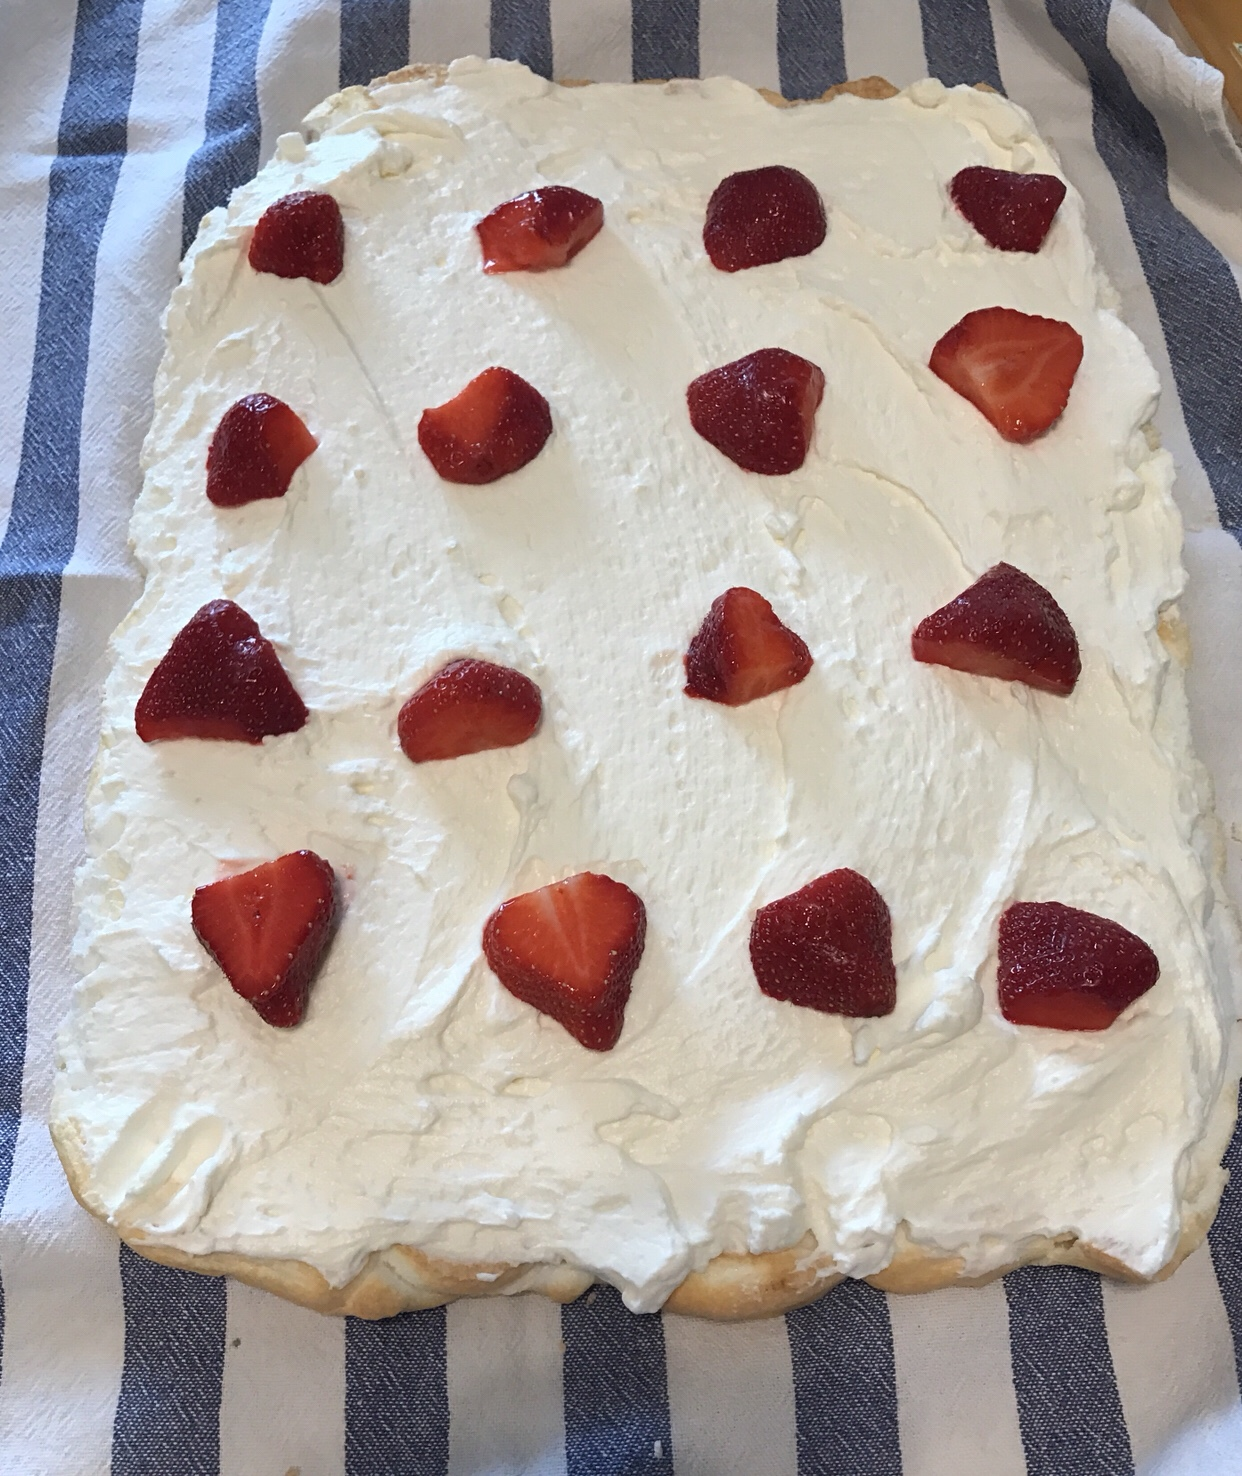 Picture of sugar free pavlova with strawberries